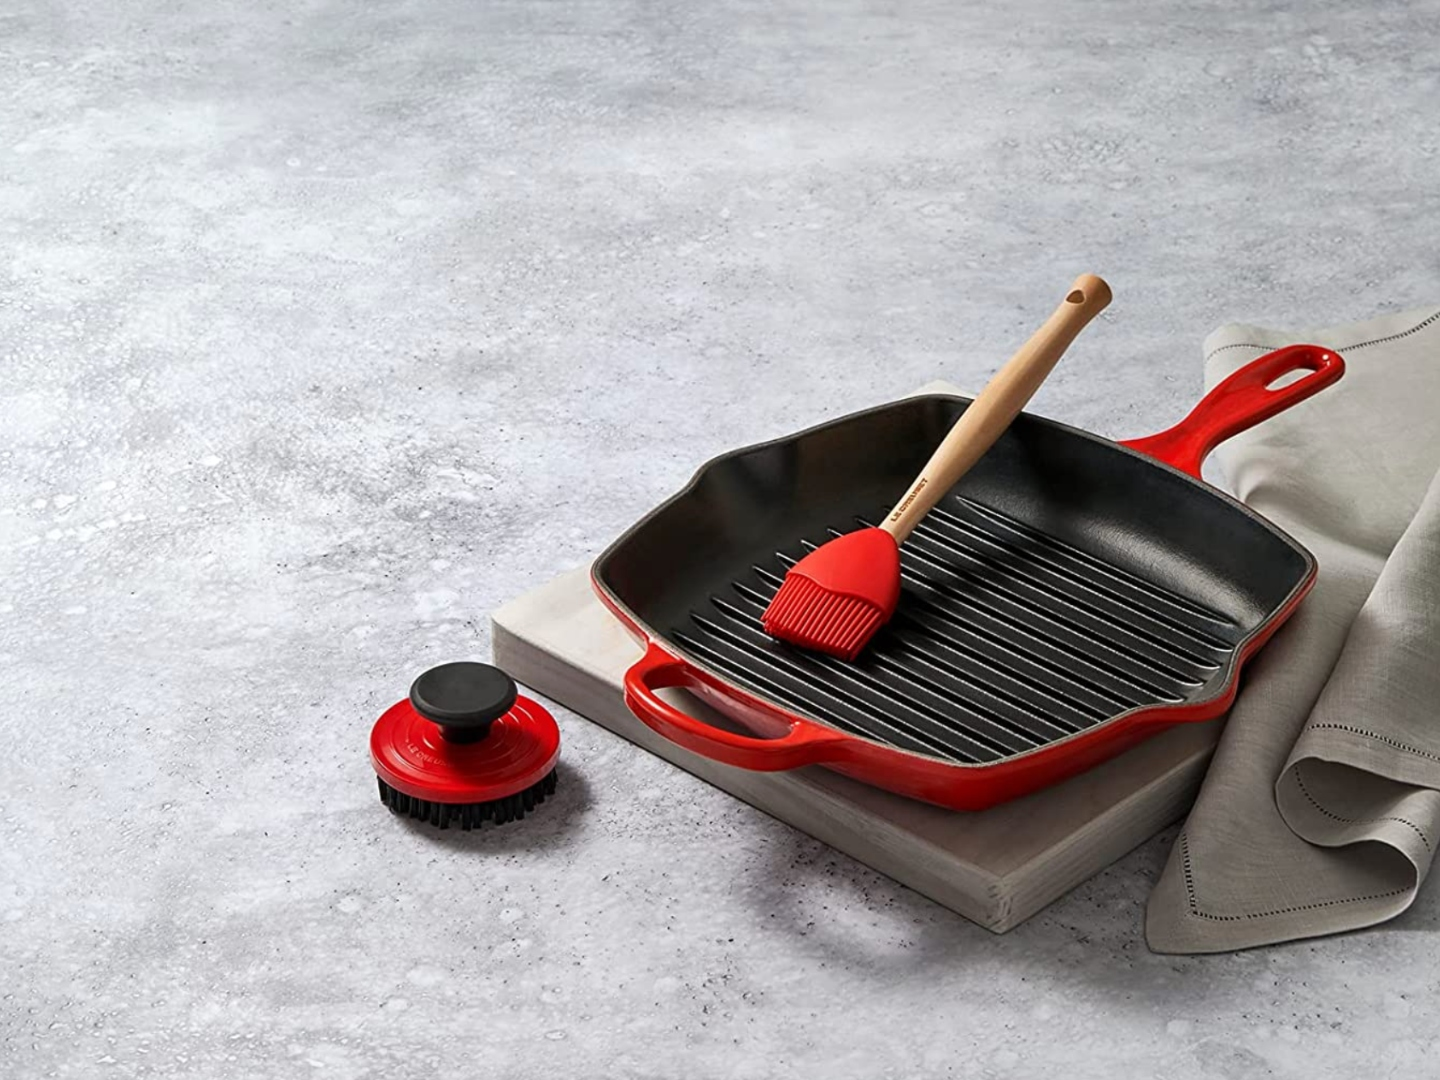 Le Creuset Makes a Game-Changing Brush For Effortless Grilling Clean-Up